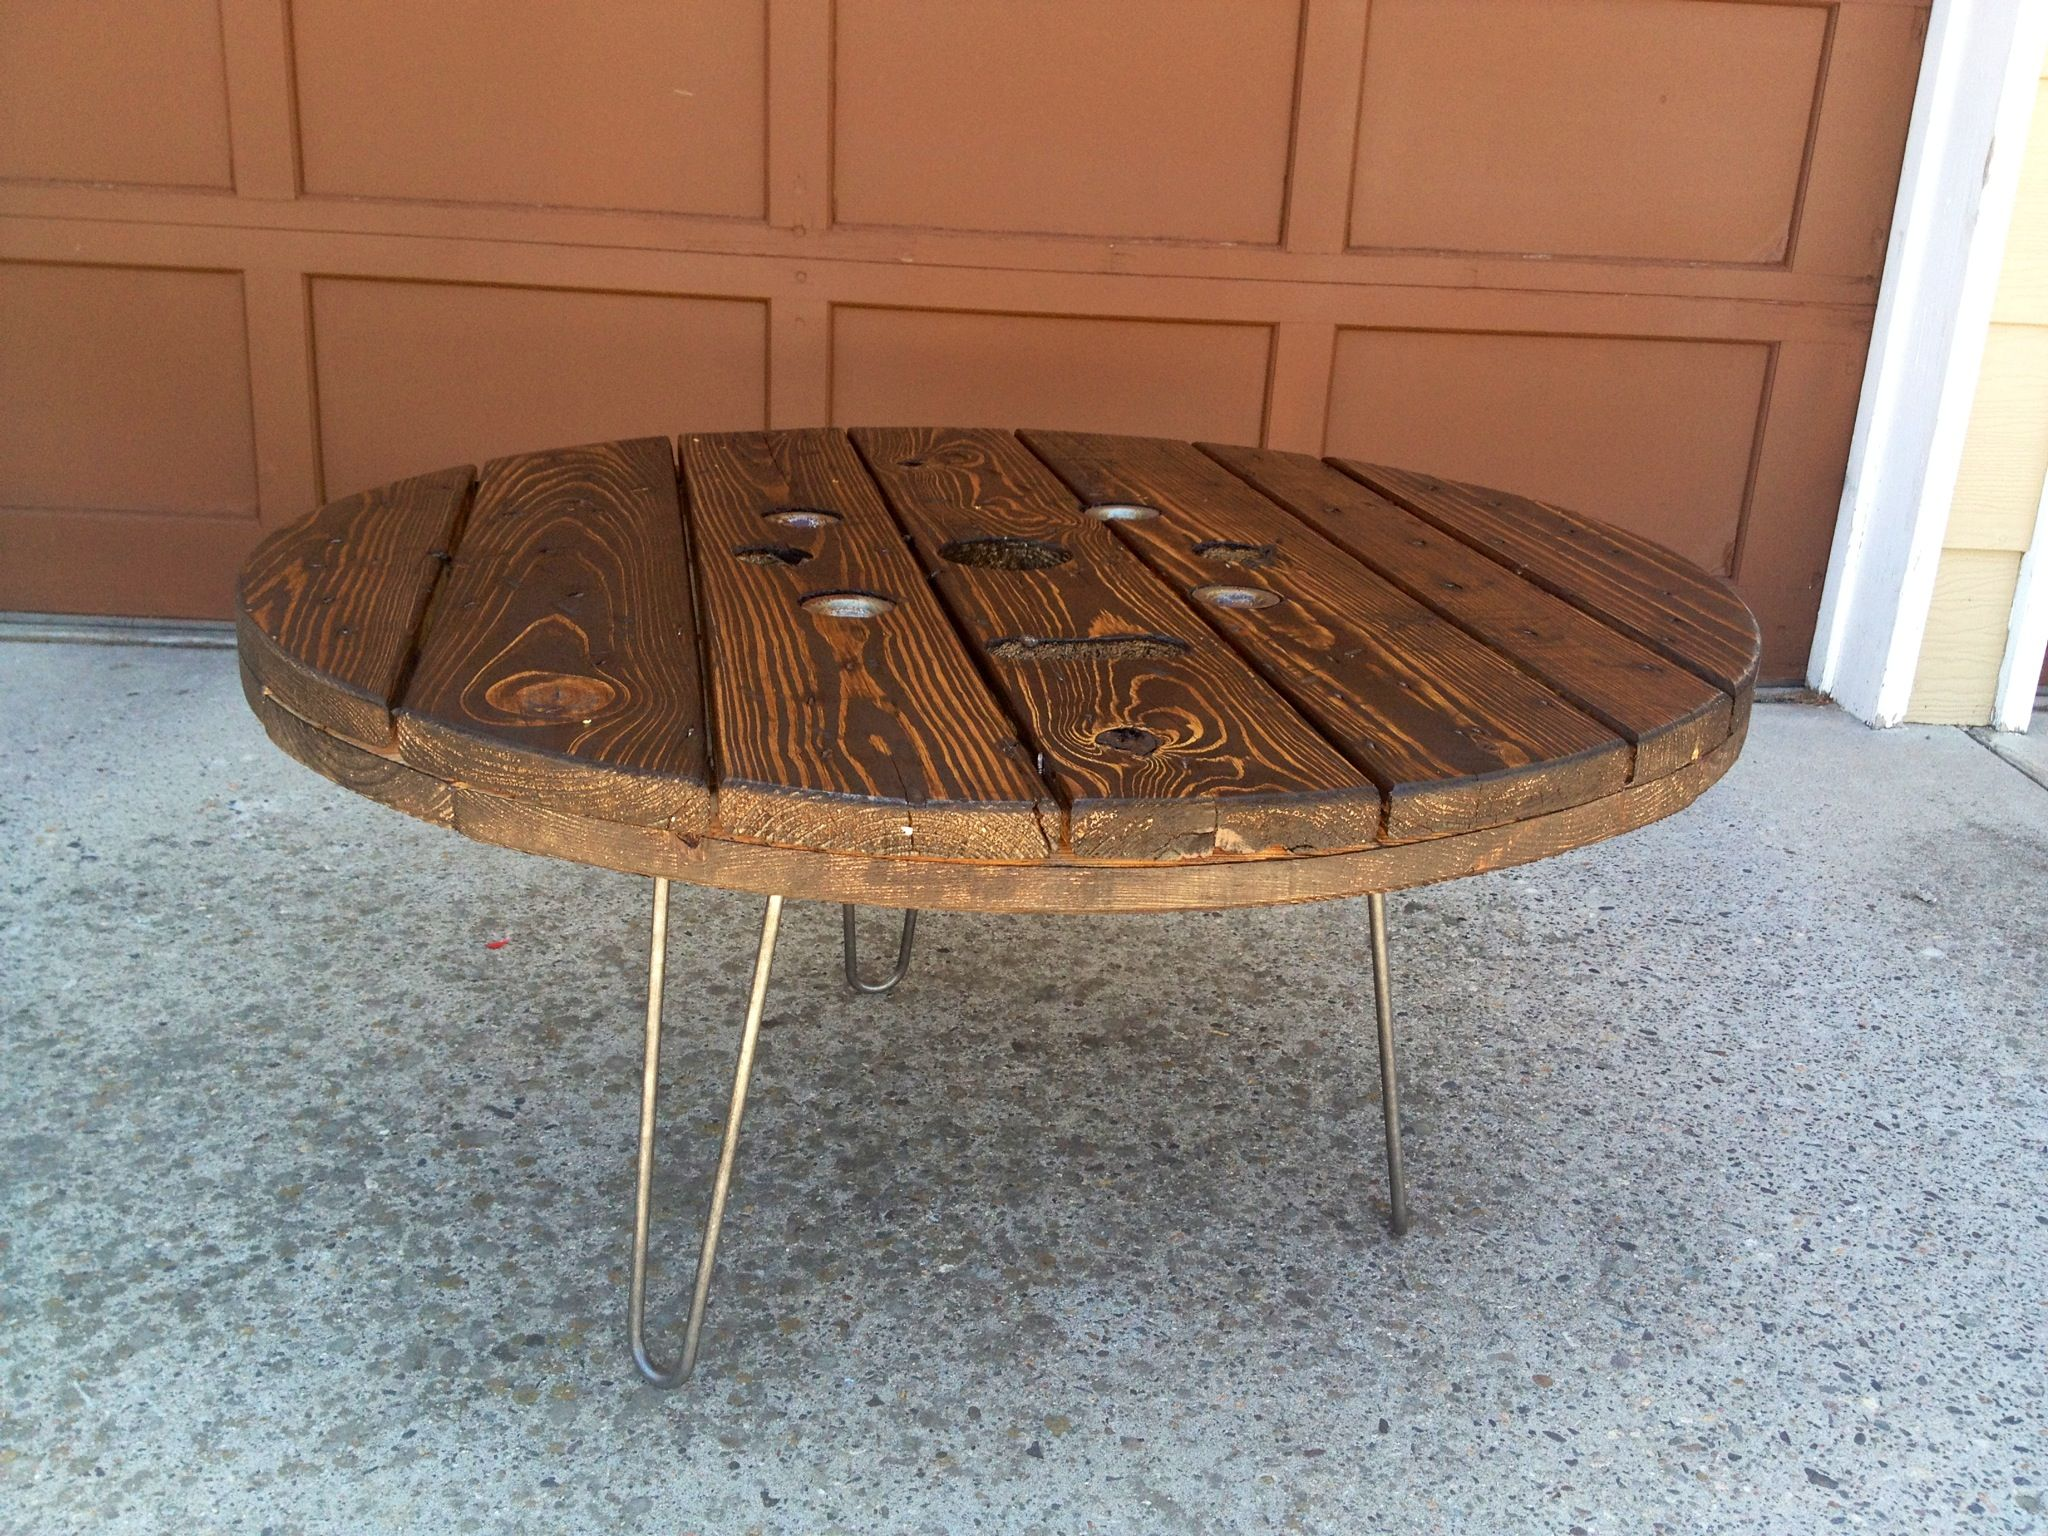 Upcycled Wooden Spool Table with Hairpin Legs